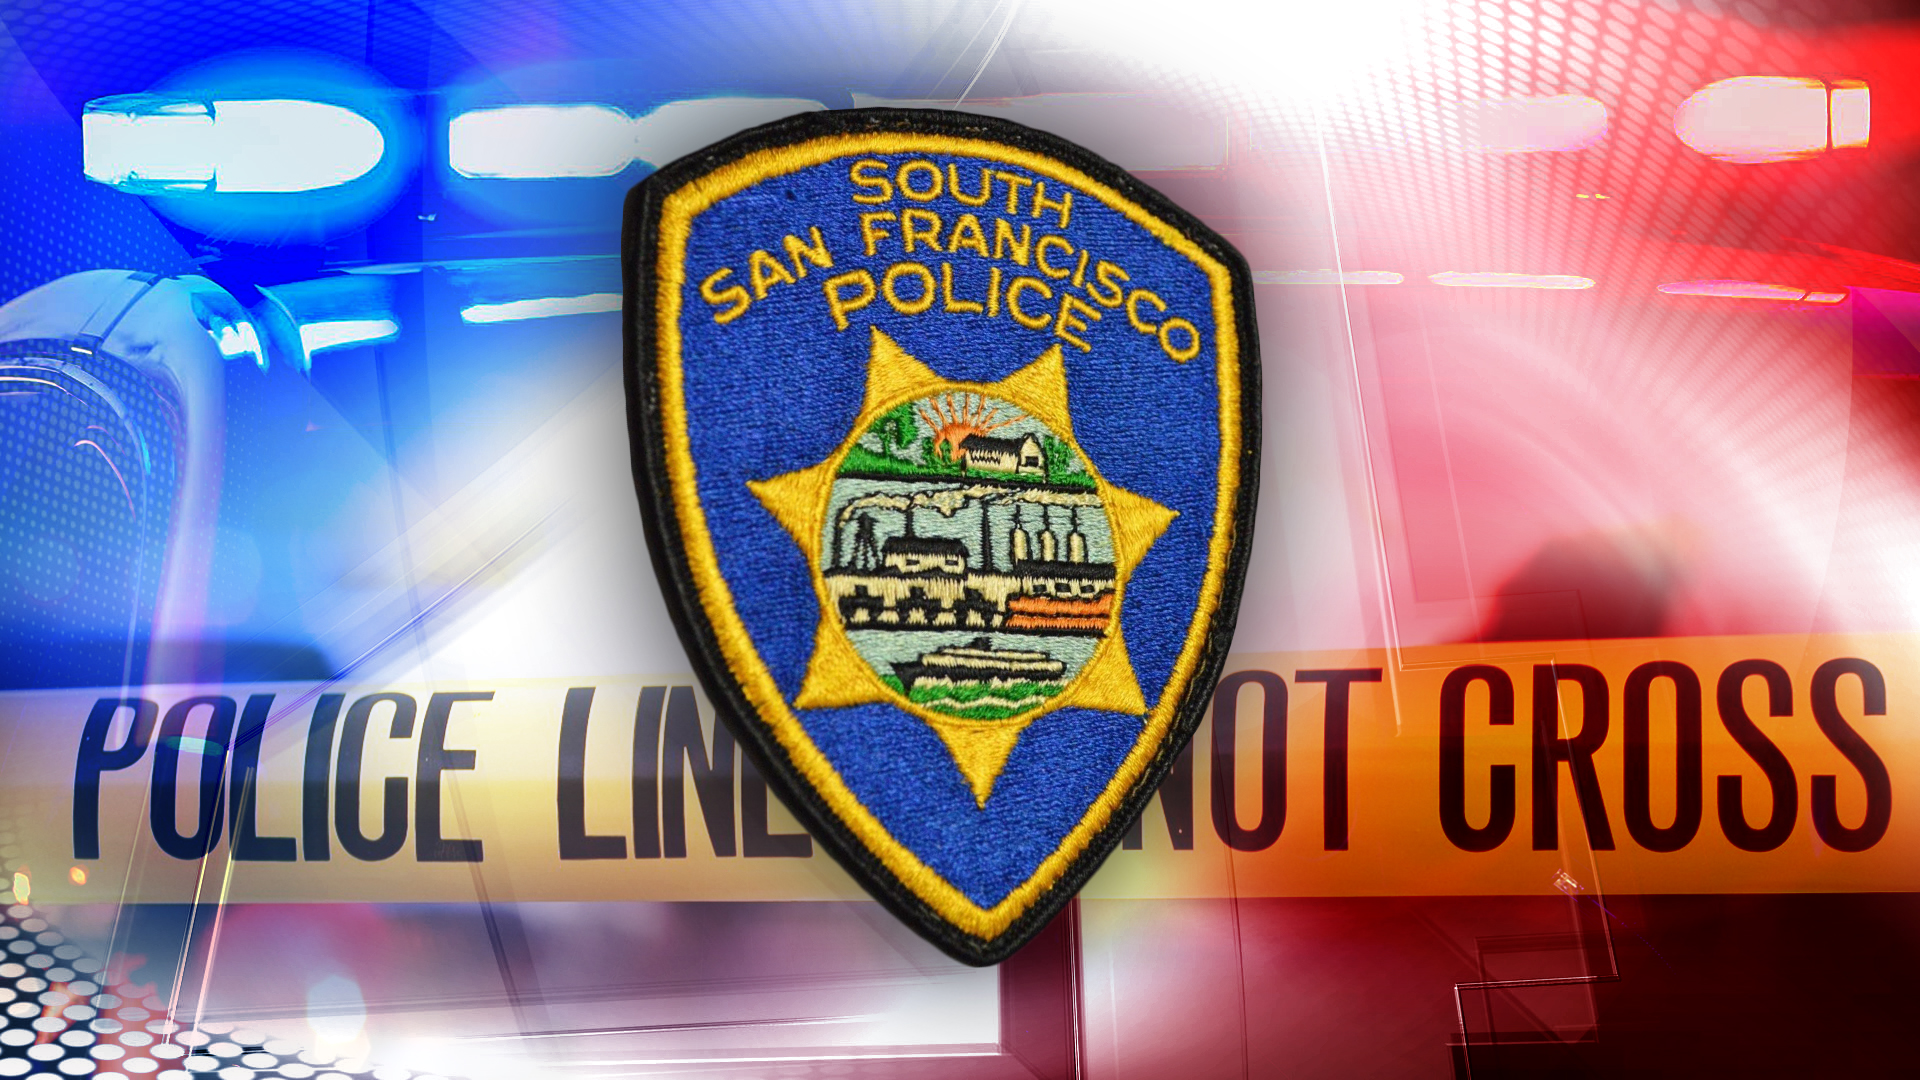 graphic FS Police South San Francisco_1523153154291.jpg.jpg